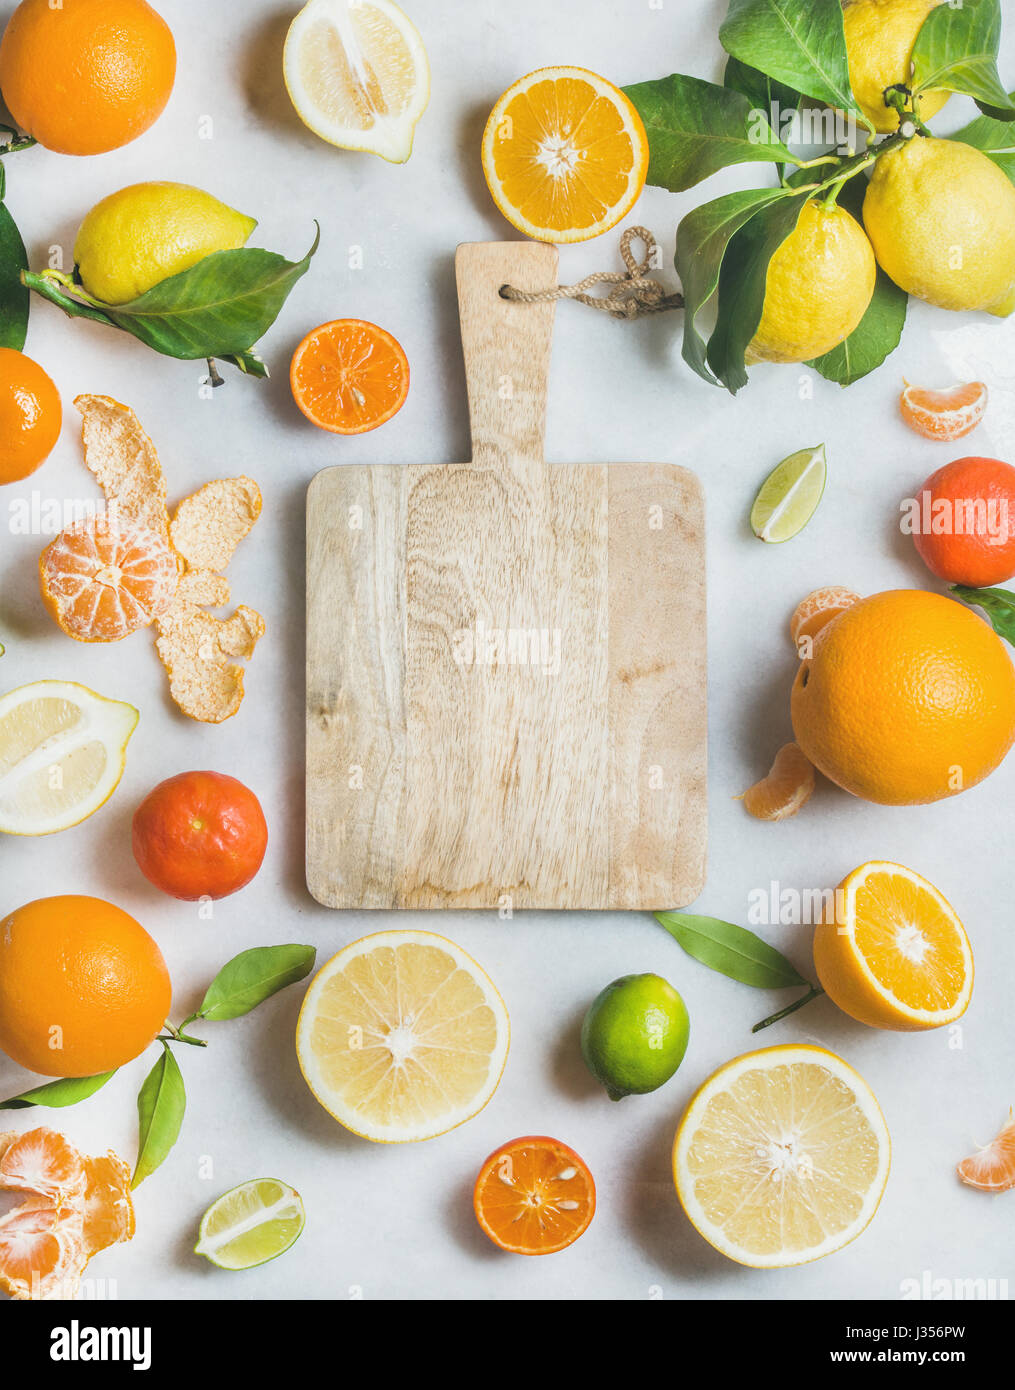 Variety of fresh citrus fruit and wooden board in center - Stock Image